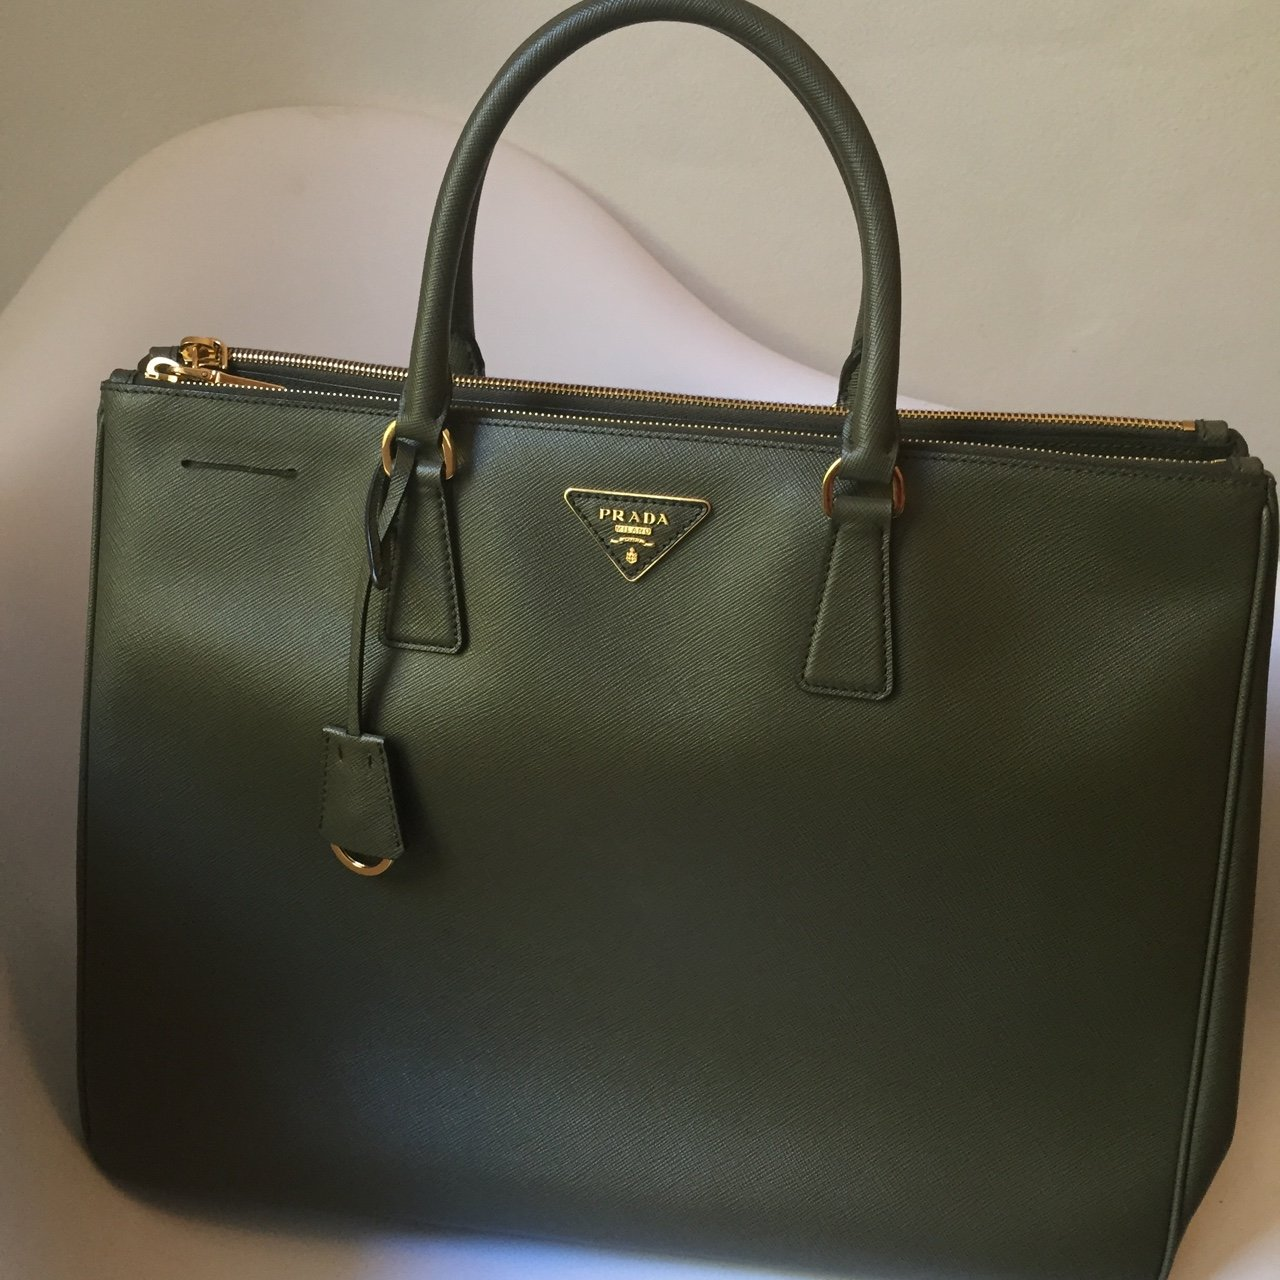 dc1c8557d7a771 @julietshimmer. 3 years ago. Barcellona, Barcellona, Spagna. Prada Tote bag  Saffiano leather in Military Green. NEW!